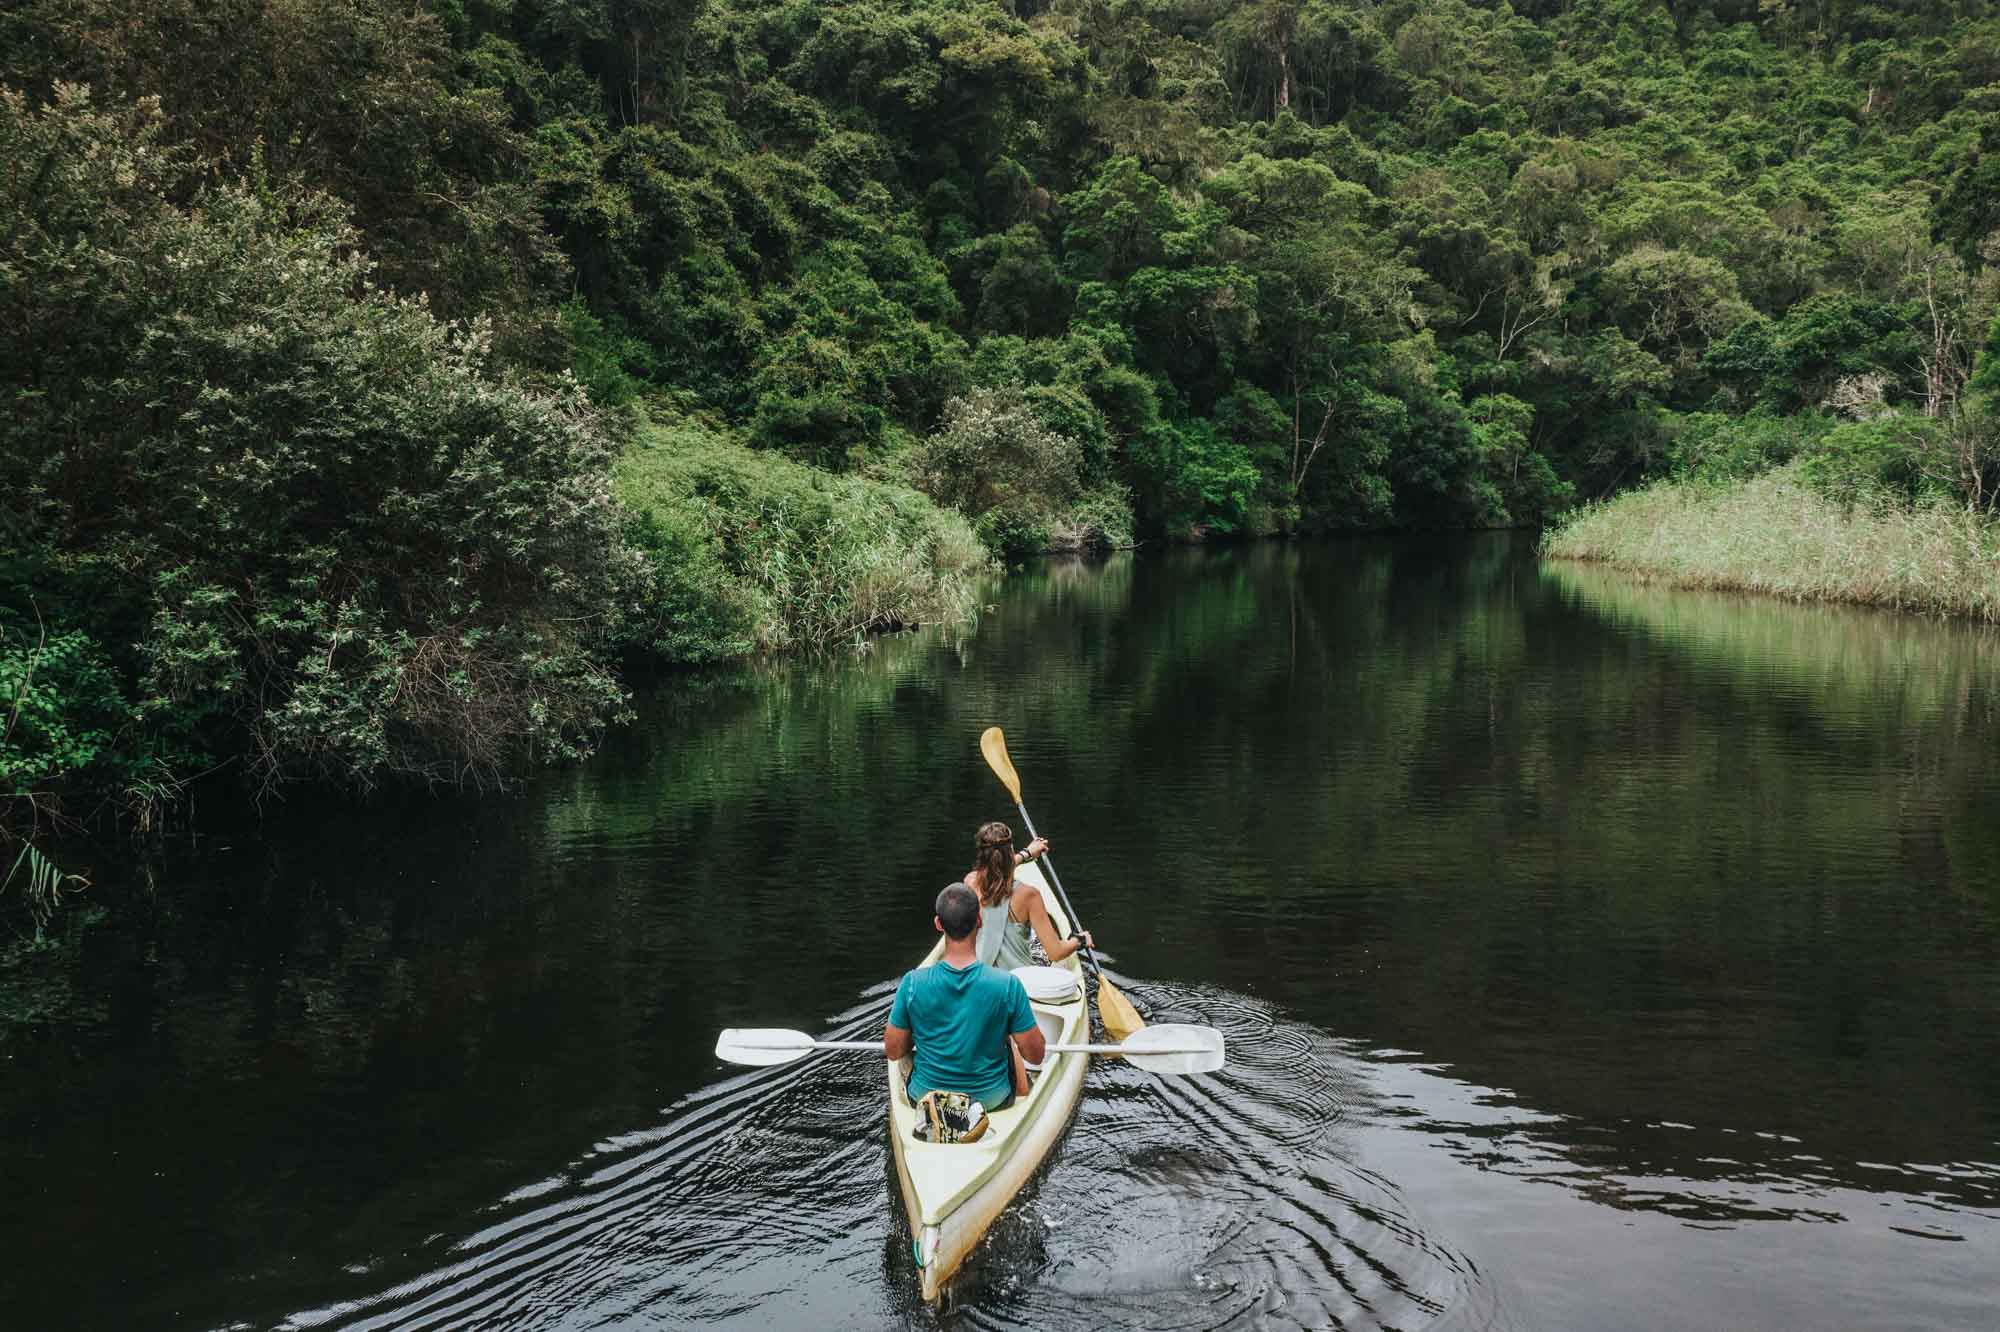 Canoeing in Wilderness National Park, Garden Route, South Africa